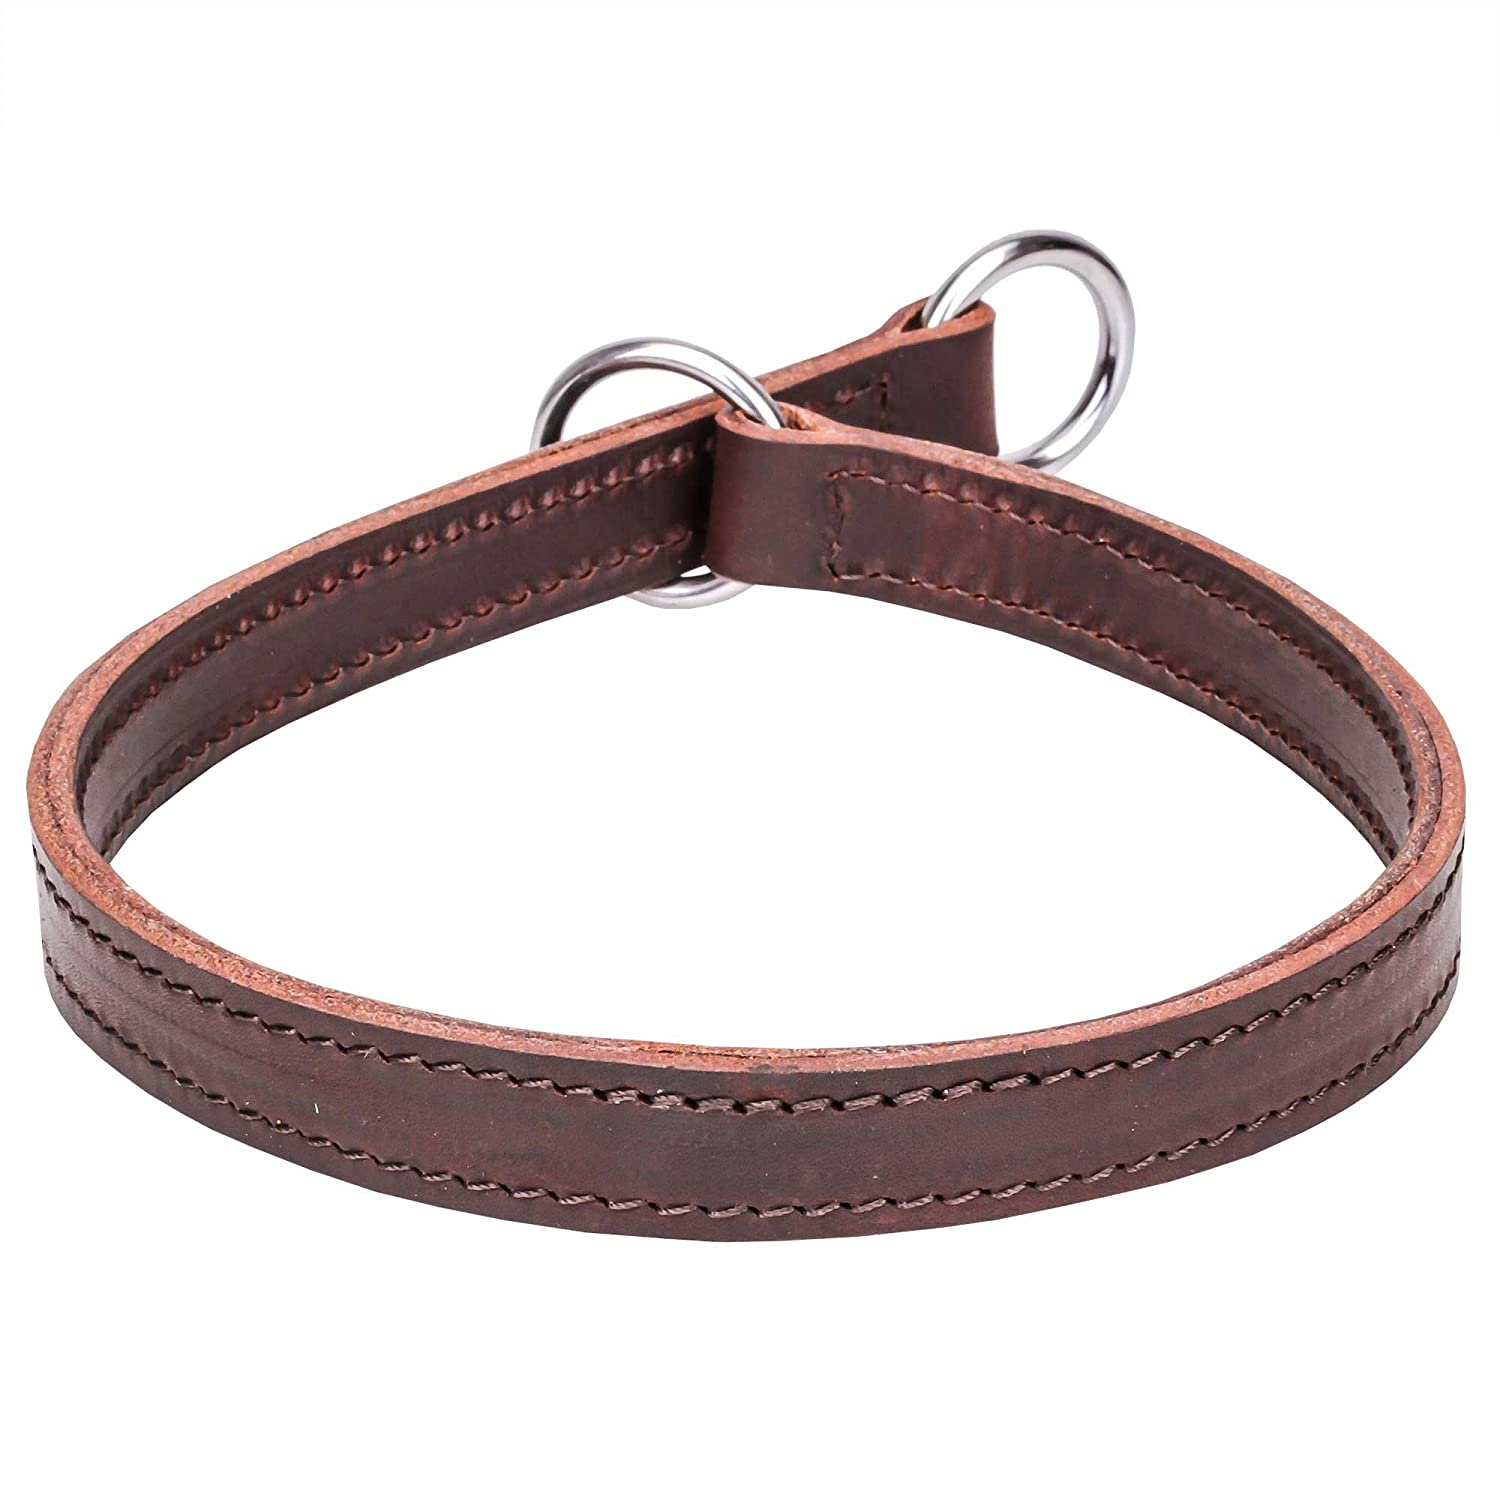 Brown fits for 30 inch dog's neck size Brown fits for 30 inch dog's neck size 30 inch 2 Ply Brown Leather Choke Dog Collar  Happy Trainer  for Obedience Training 1 inch (25 mm) wide